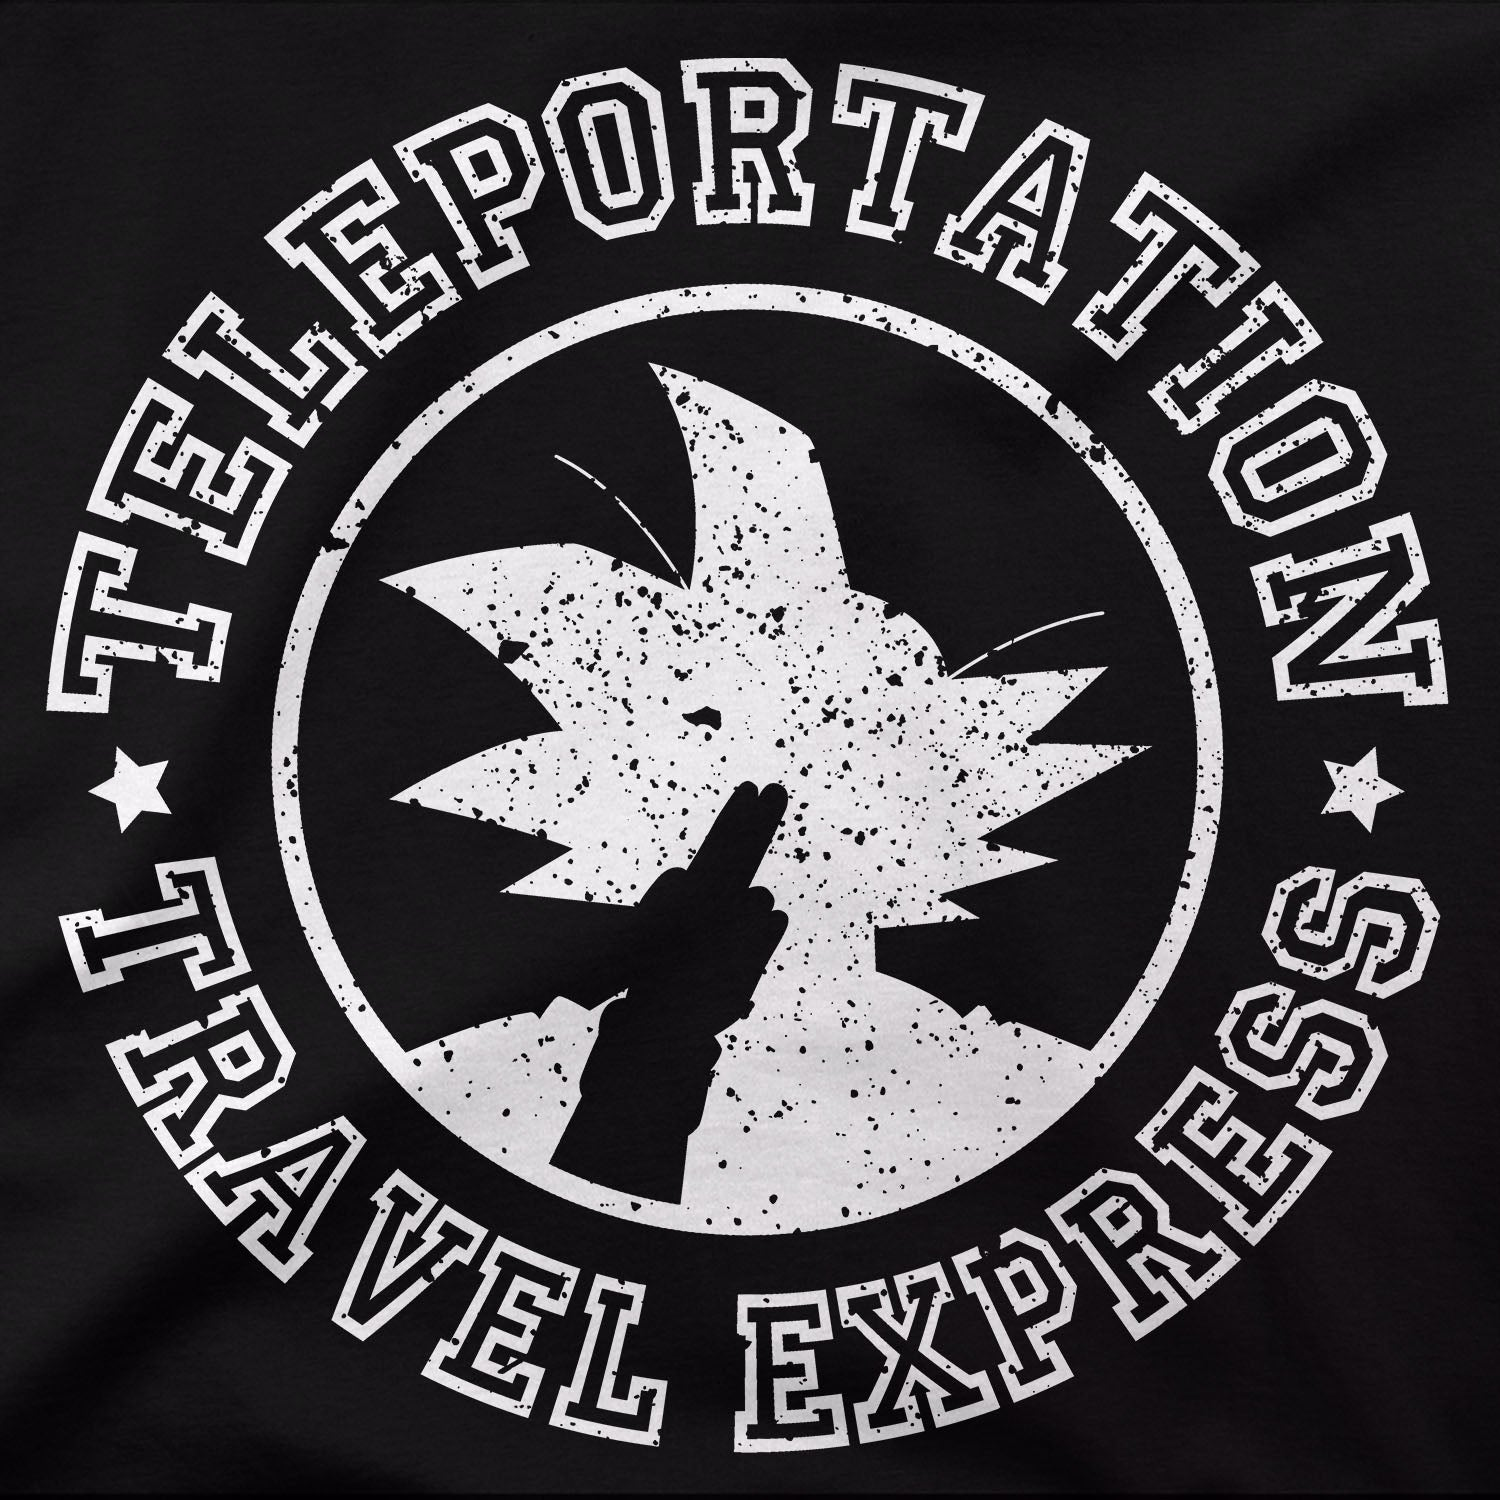 Teleportation Travel Express